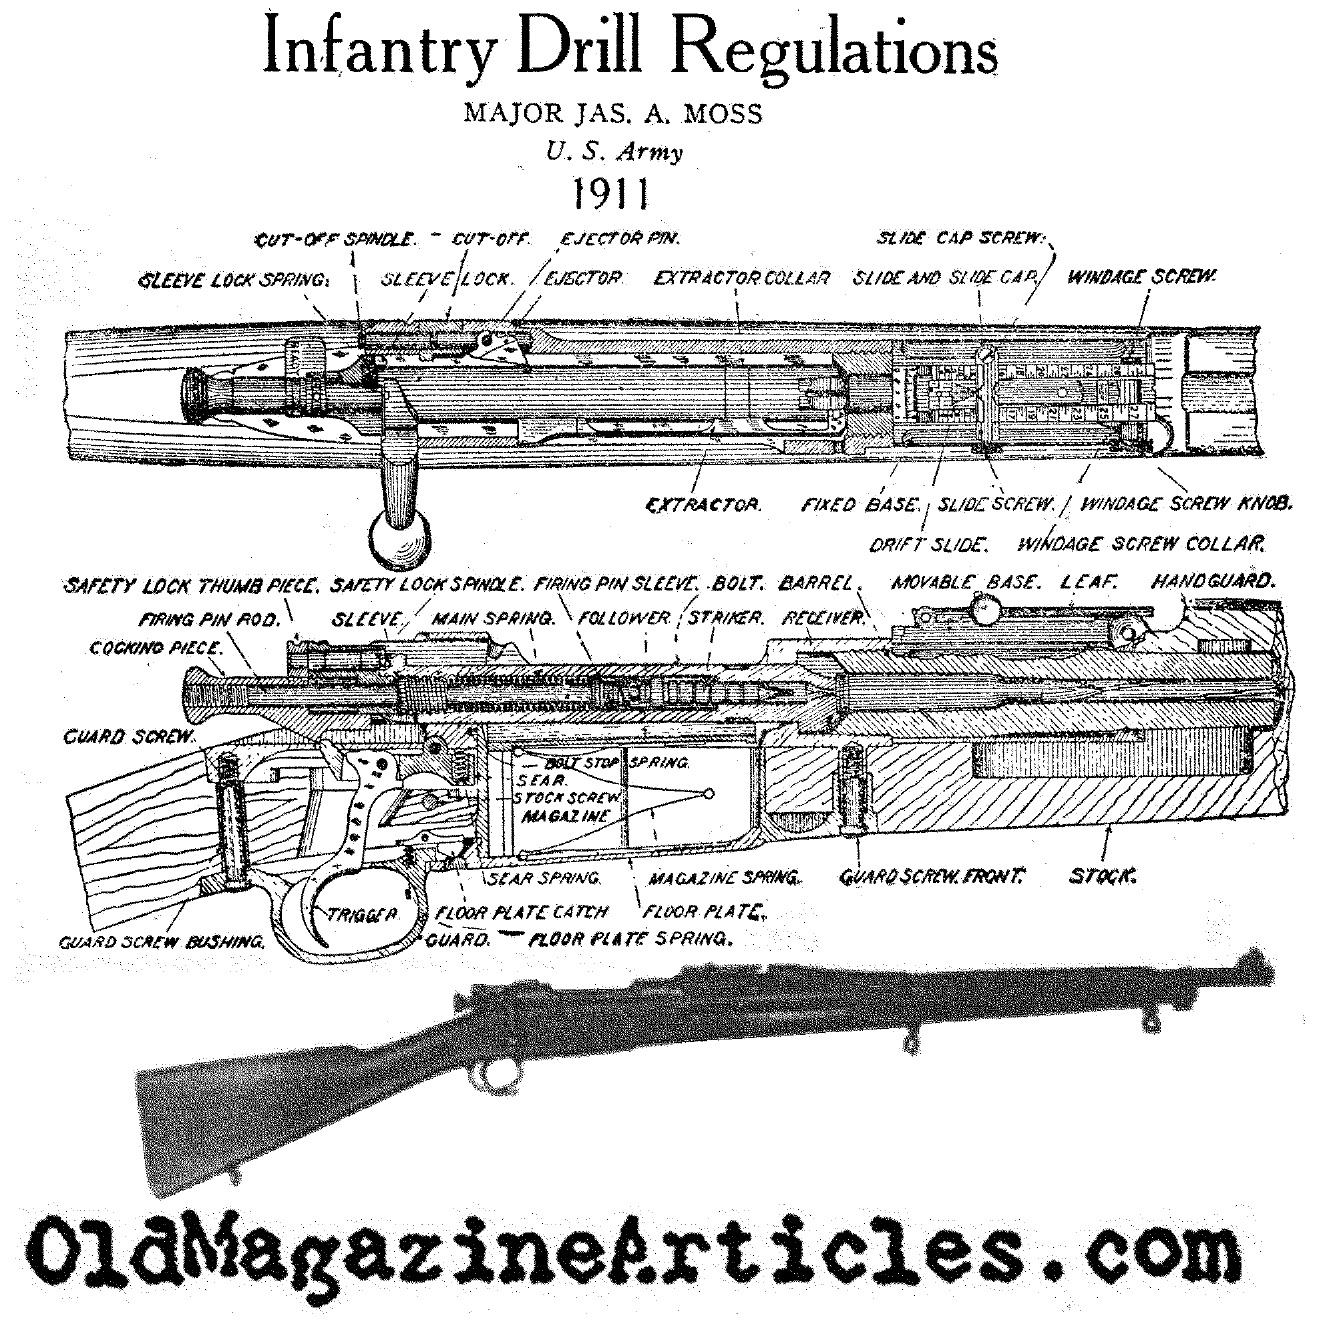 The American Springfield '03 Rifle (U.S. Infantry Drill Manual, 1911)